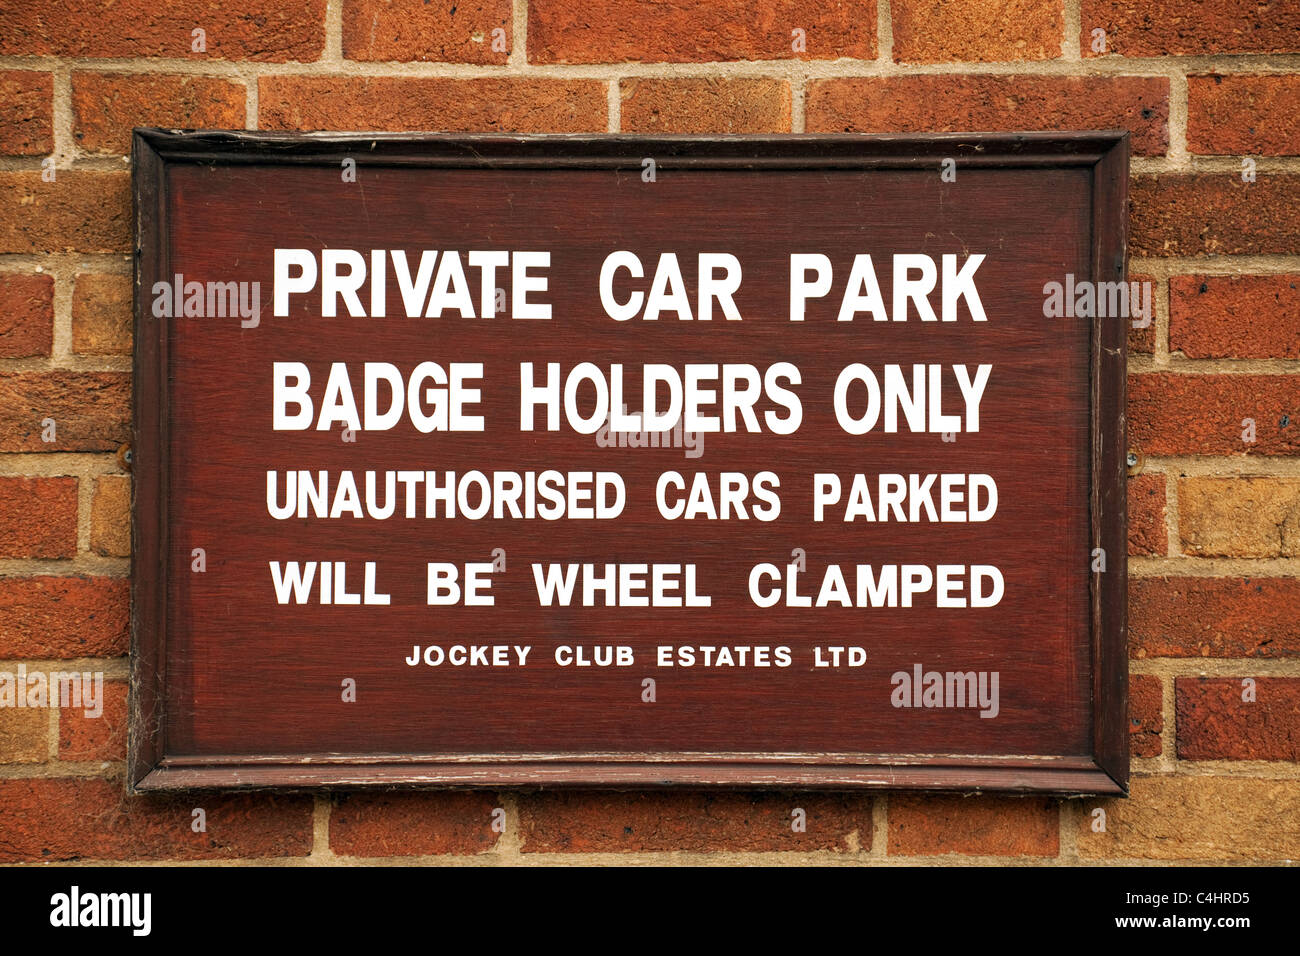 Private Car Park sign at the Jockey Club, Newmarket Suffolk UK Stock Photo